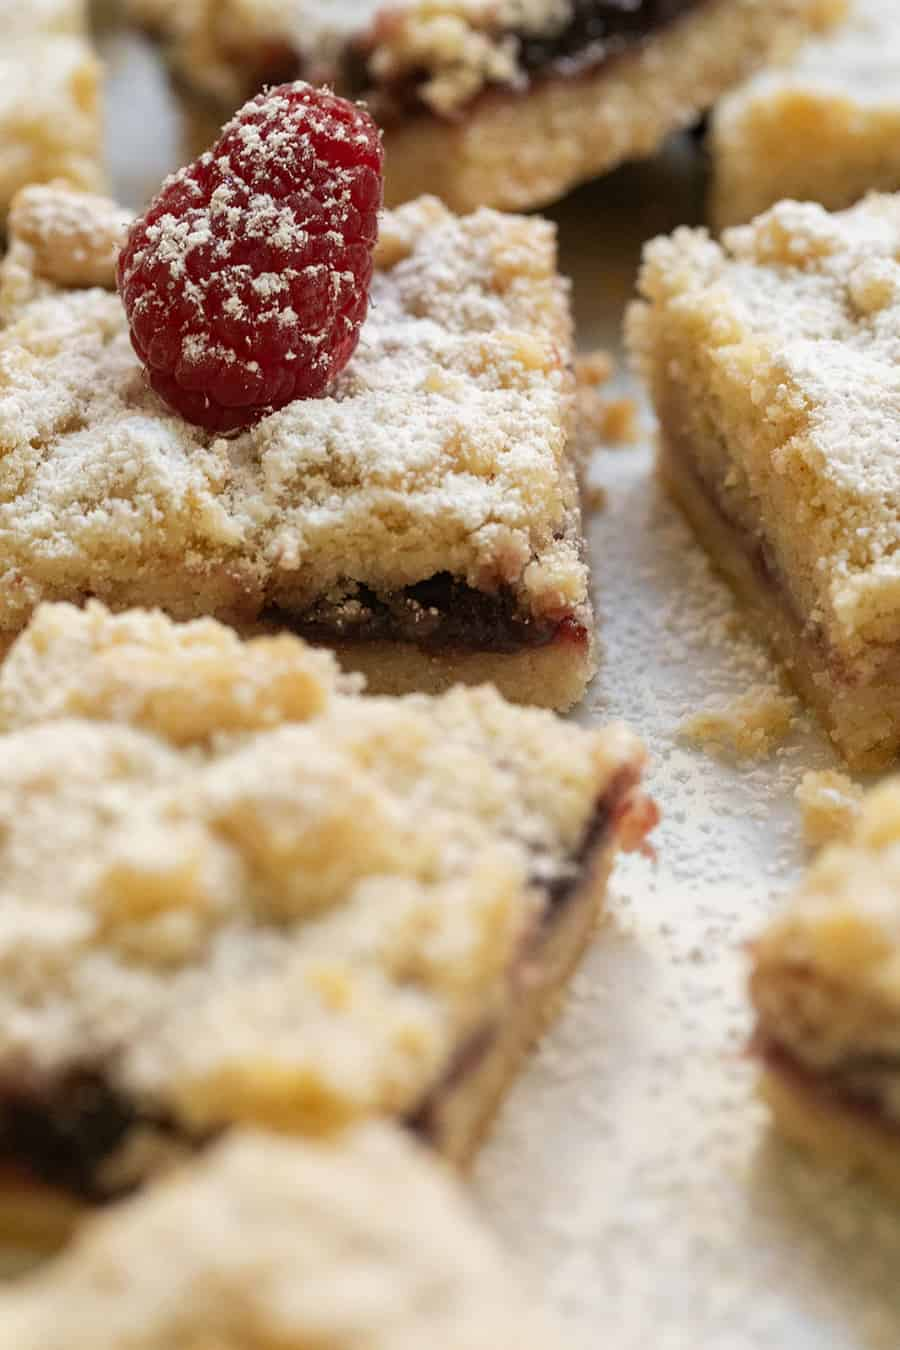 Shortbread crumble bars with powdered sugar and a large raspberry on top.